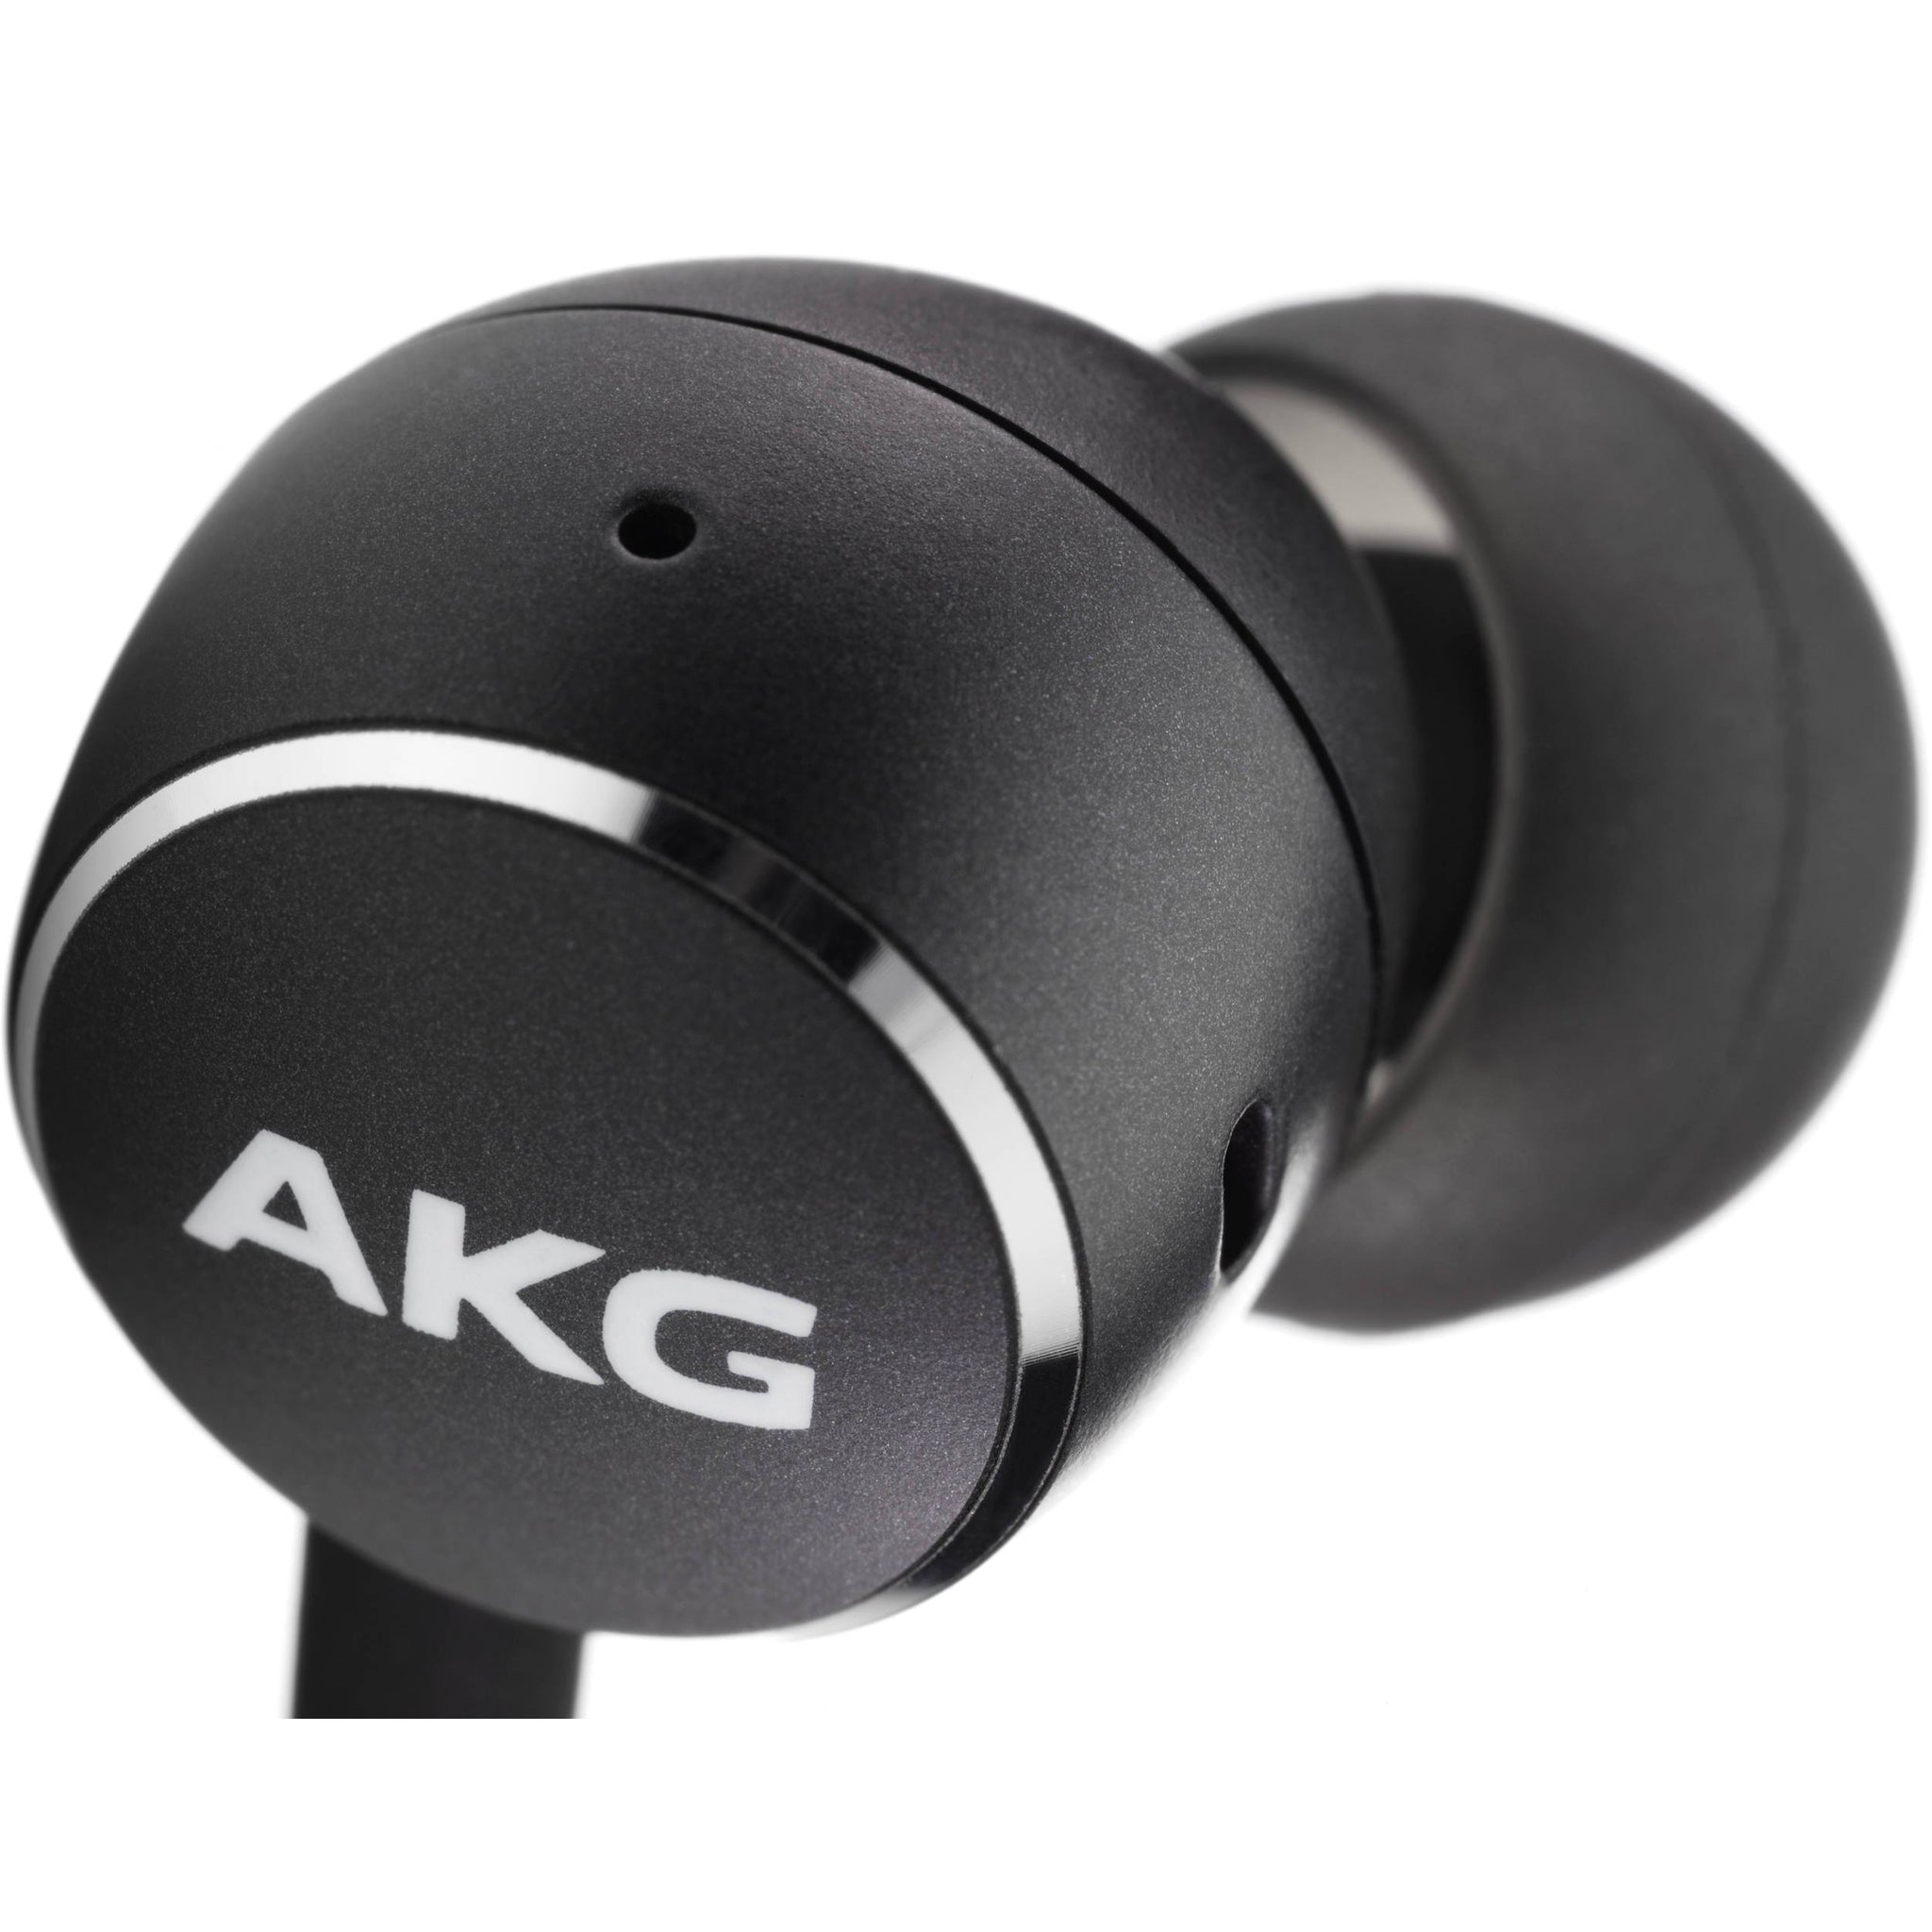 AKG Y100 Wireless In-Ear Headphones (Black)